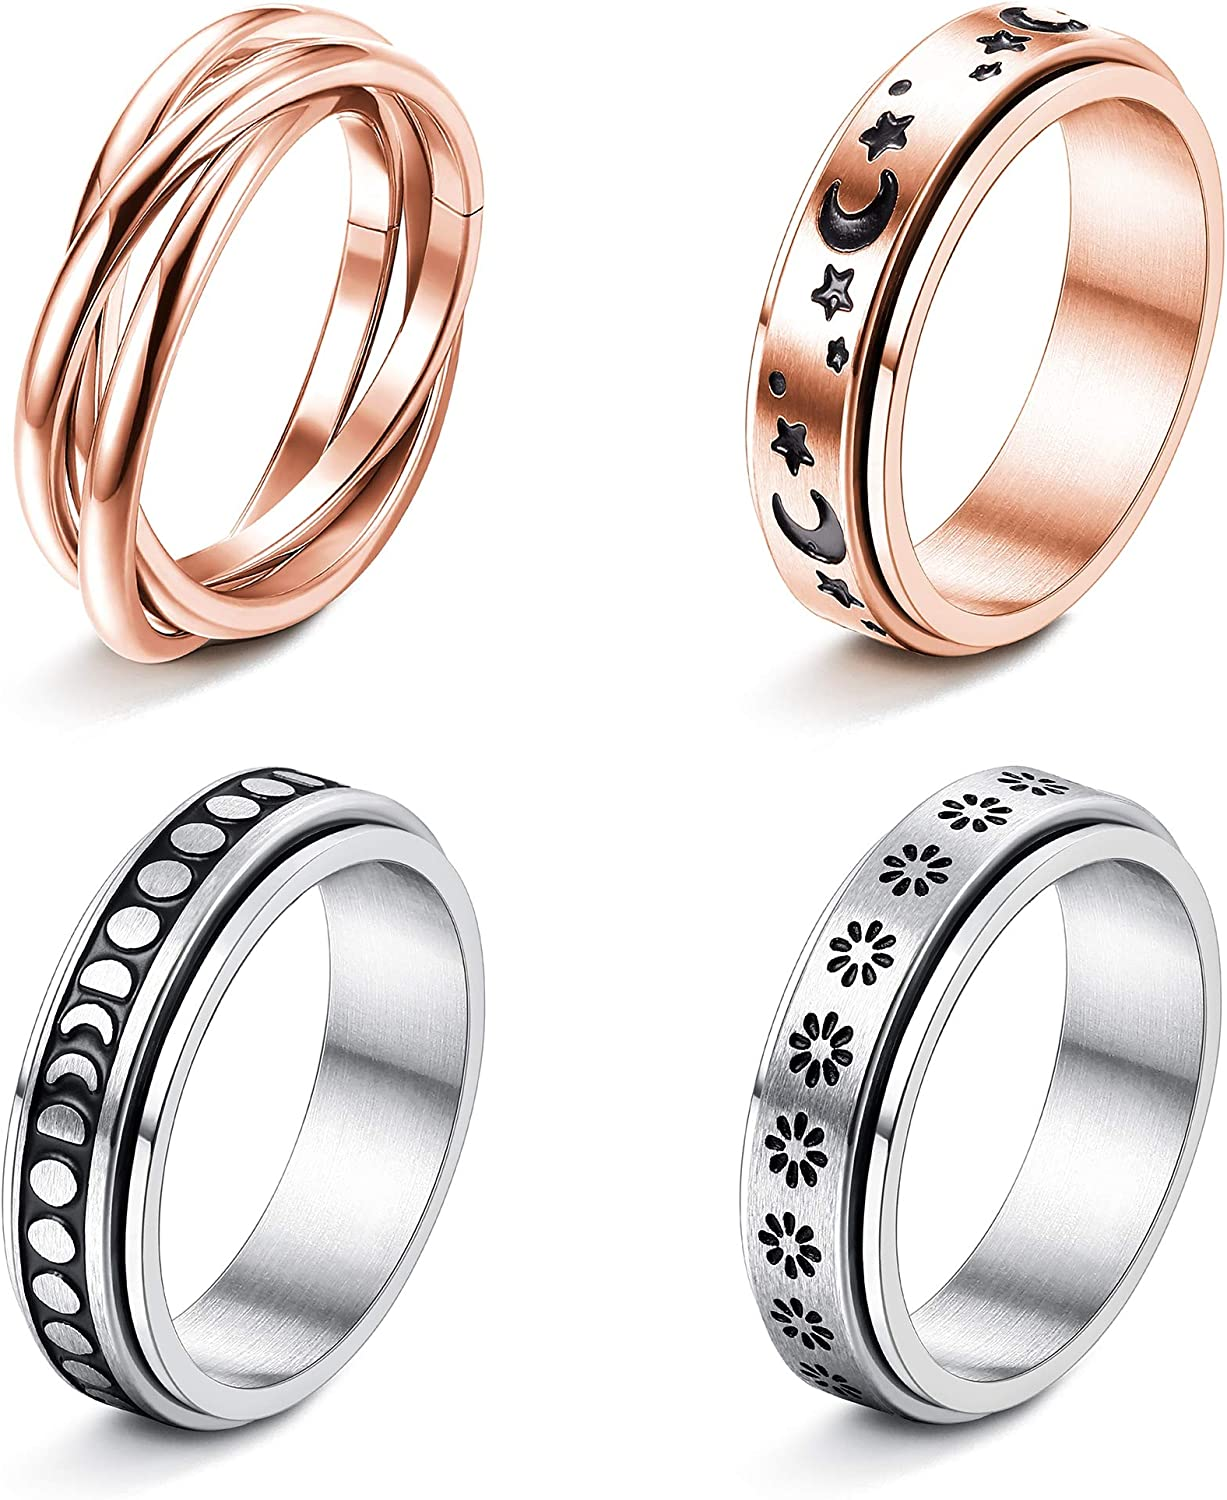 FUNRUN JEWELRY 4 Pcs Stainless Steel Spinner Ring for Women Mens Fidget Band Rings Moon Star Celtic Stress Relieving Wide Wedding Promise Rings Set